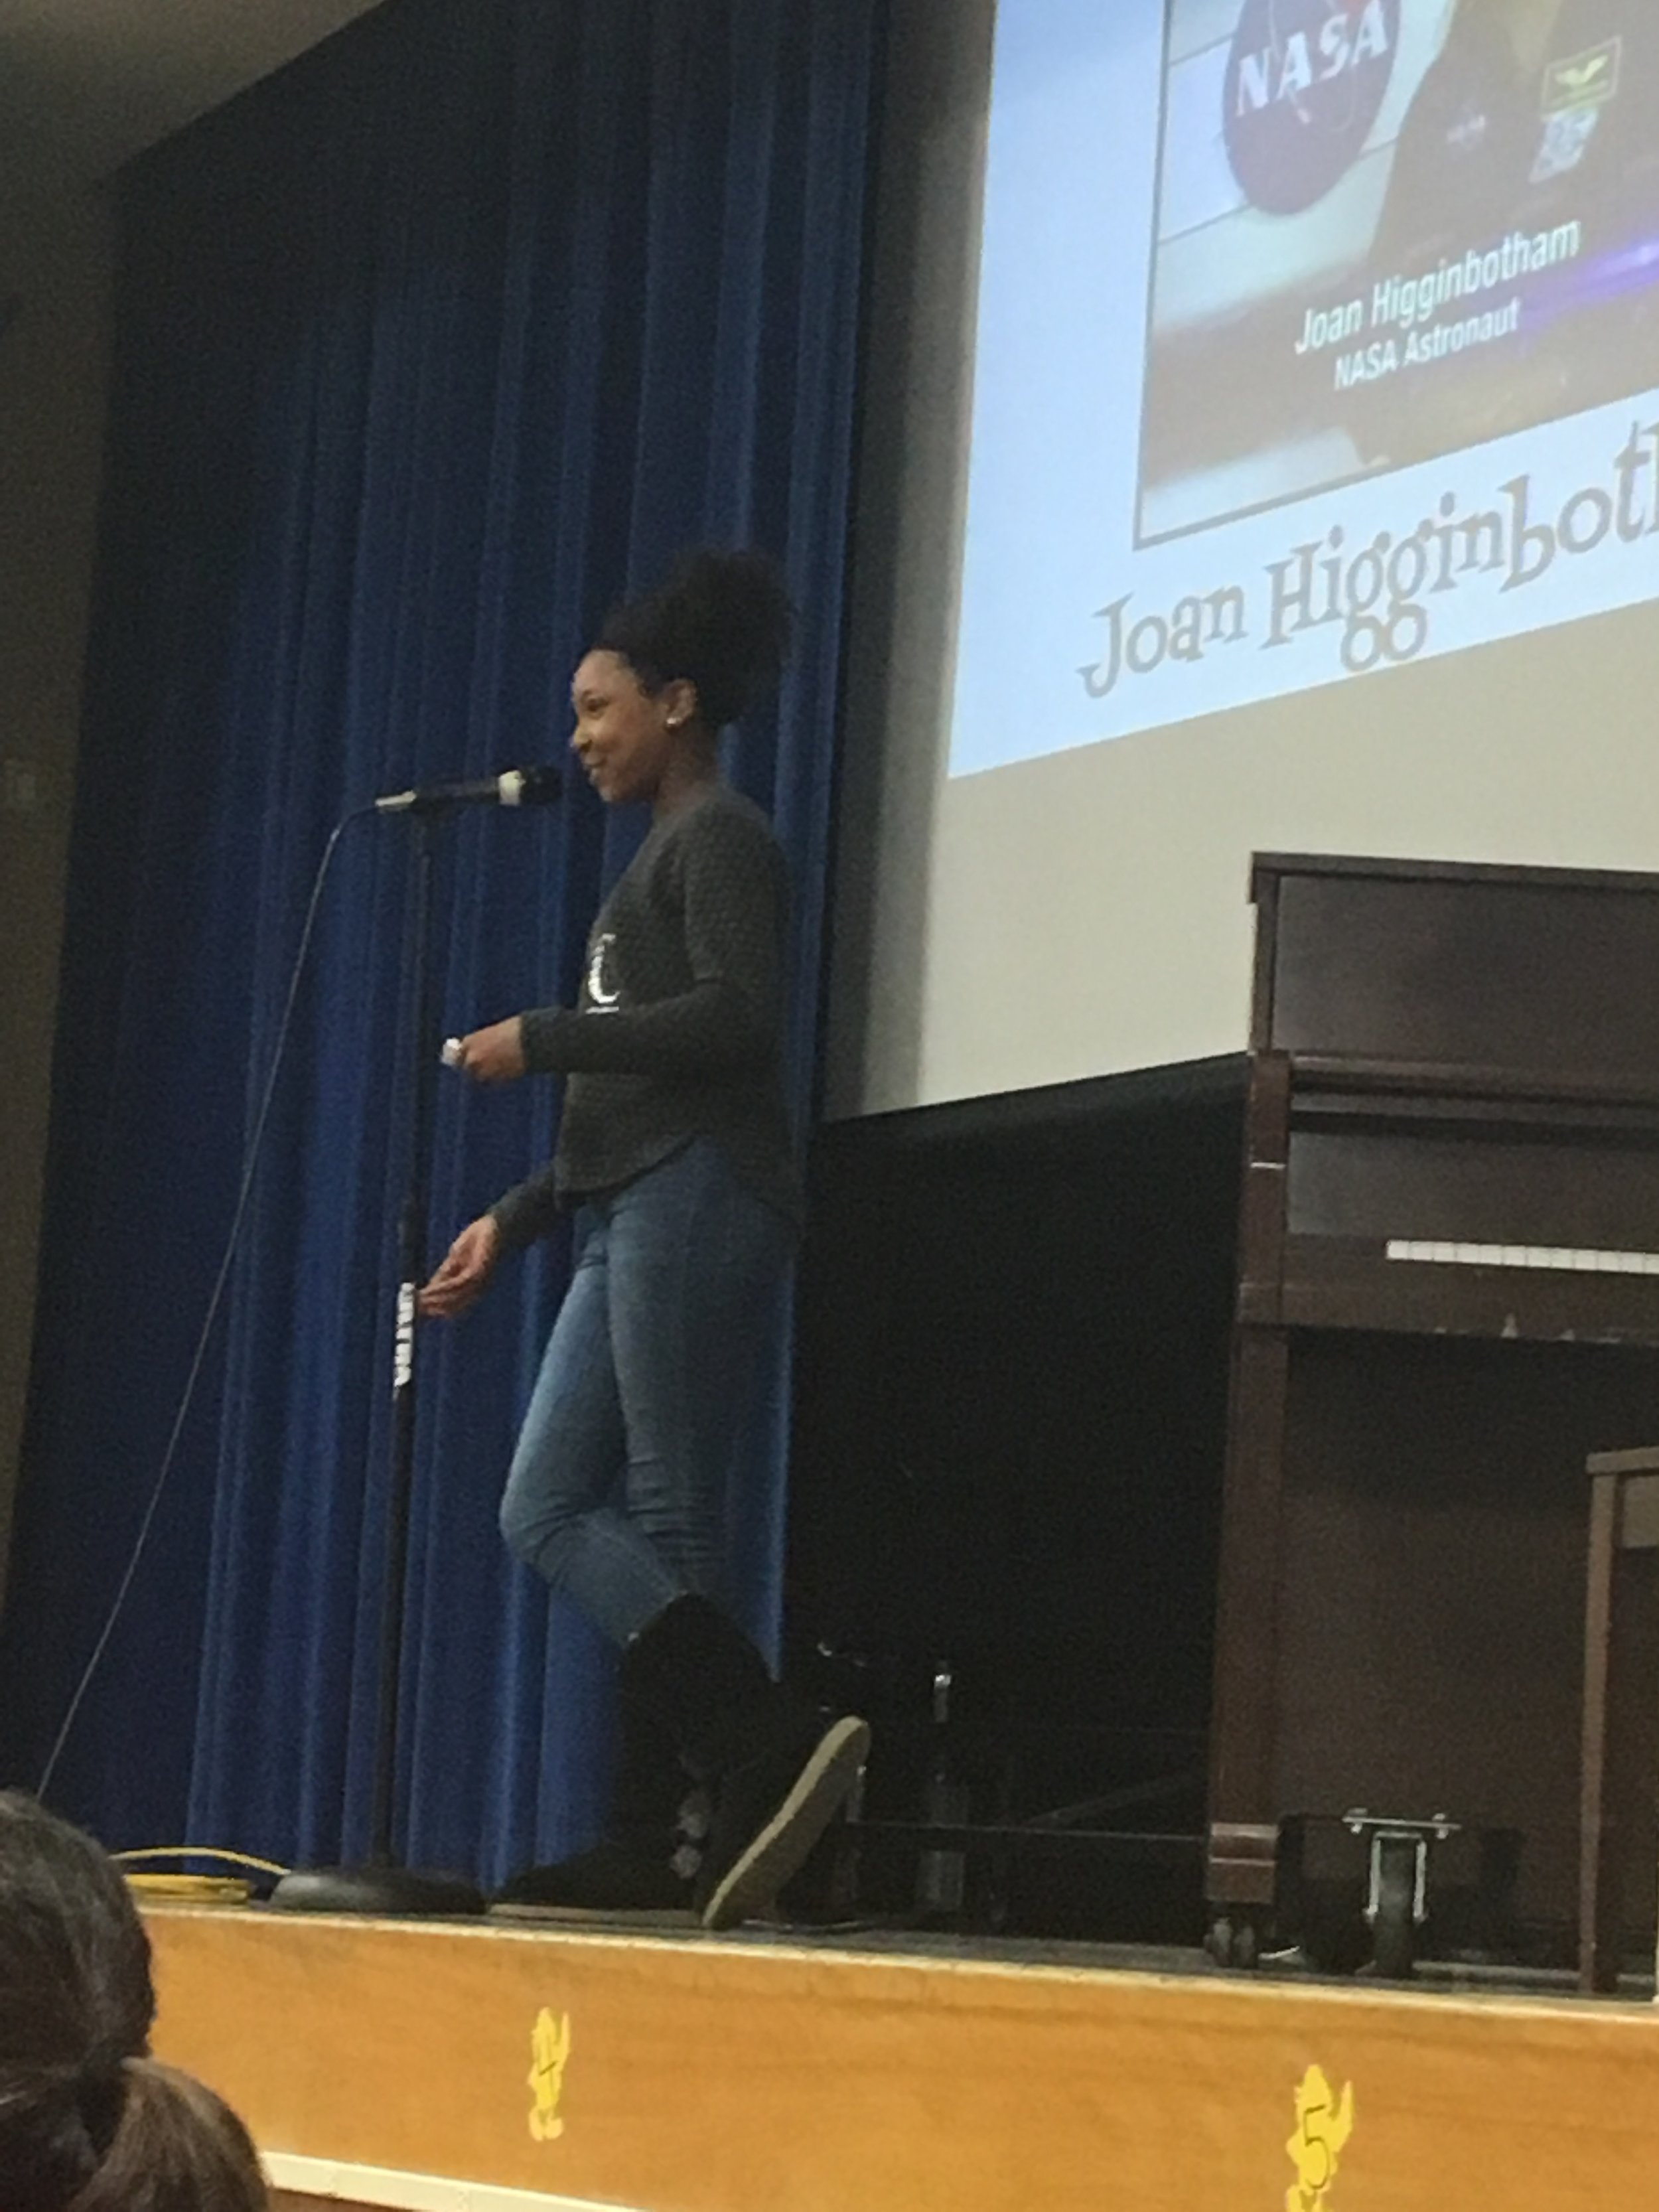 Mia Meyer recognizes Joan Higginbotham during the assembly.